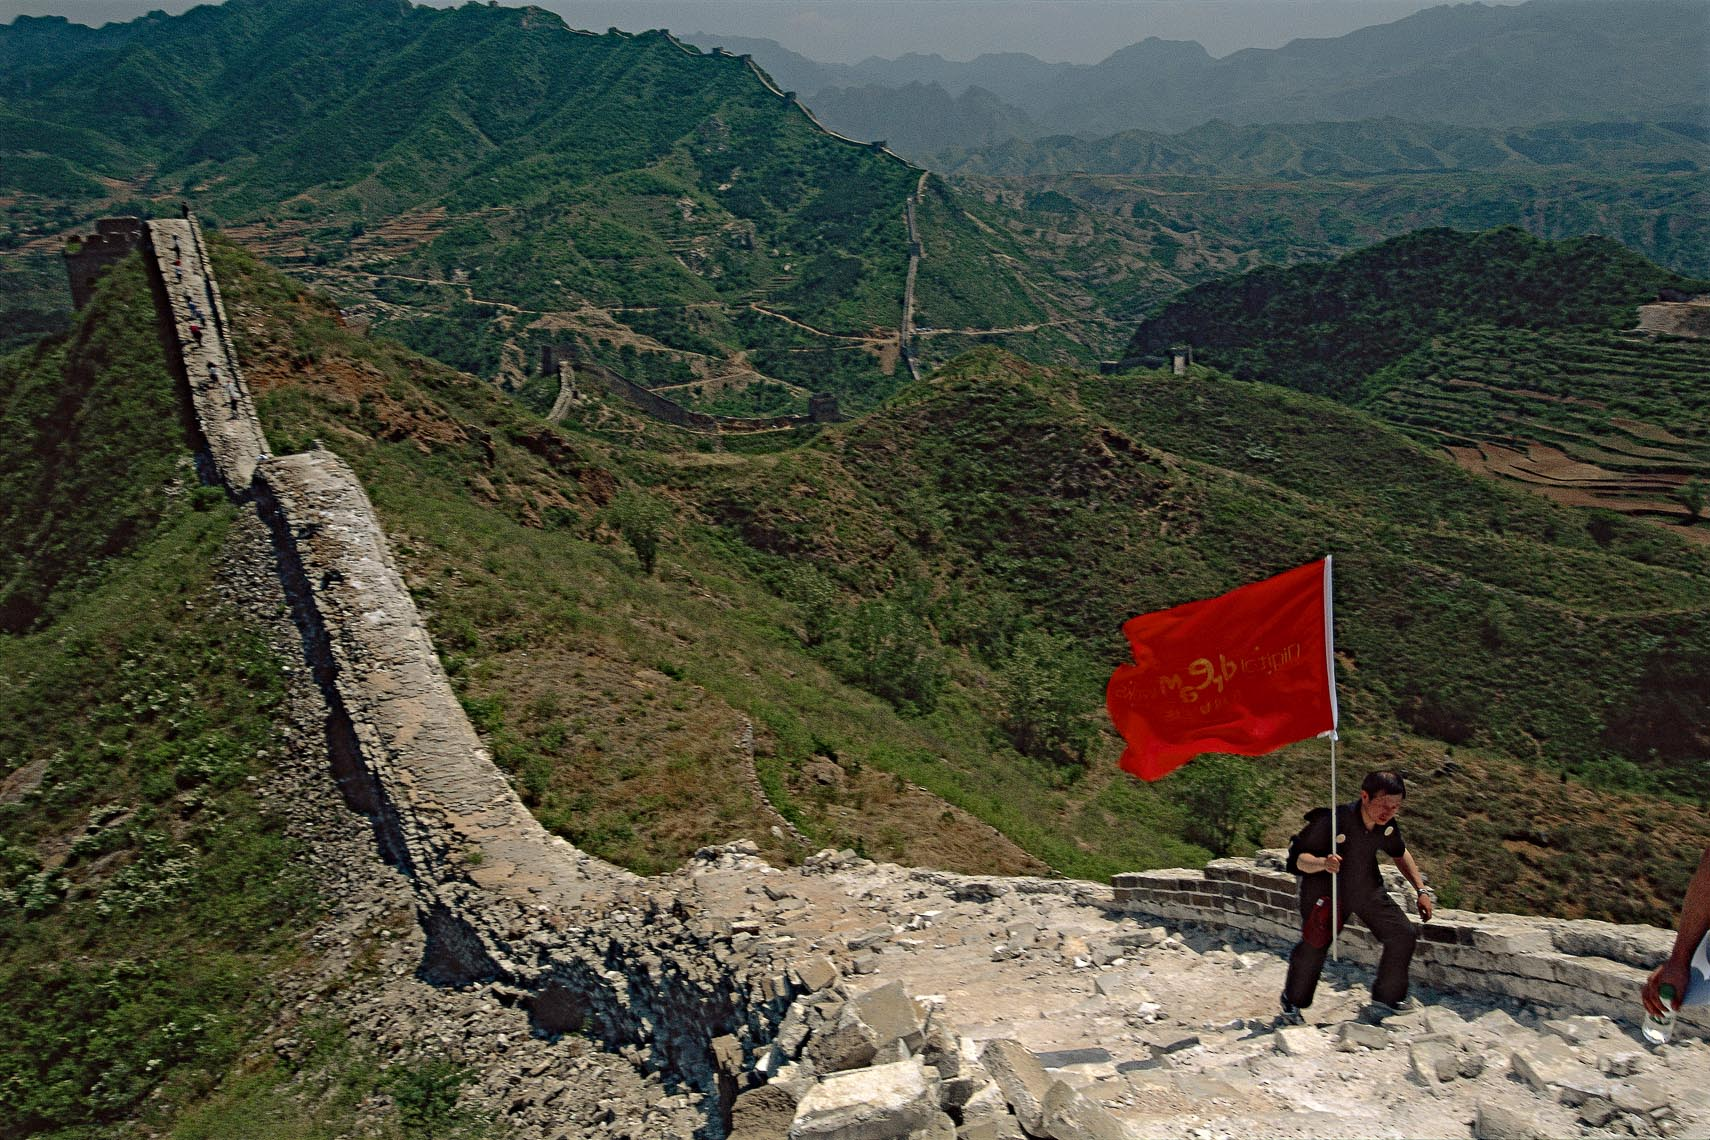 GreatWall_09.jpg